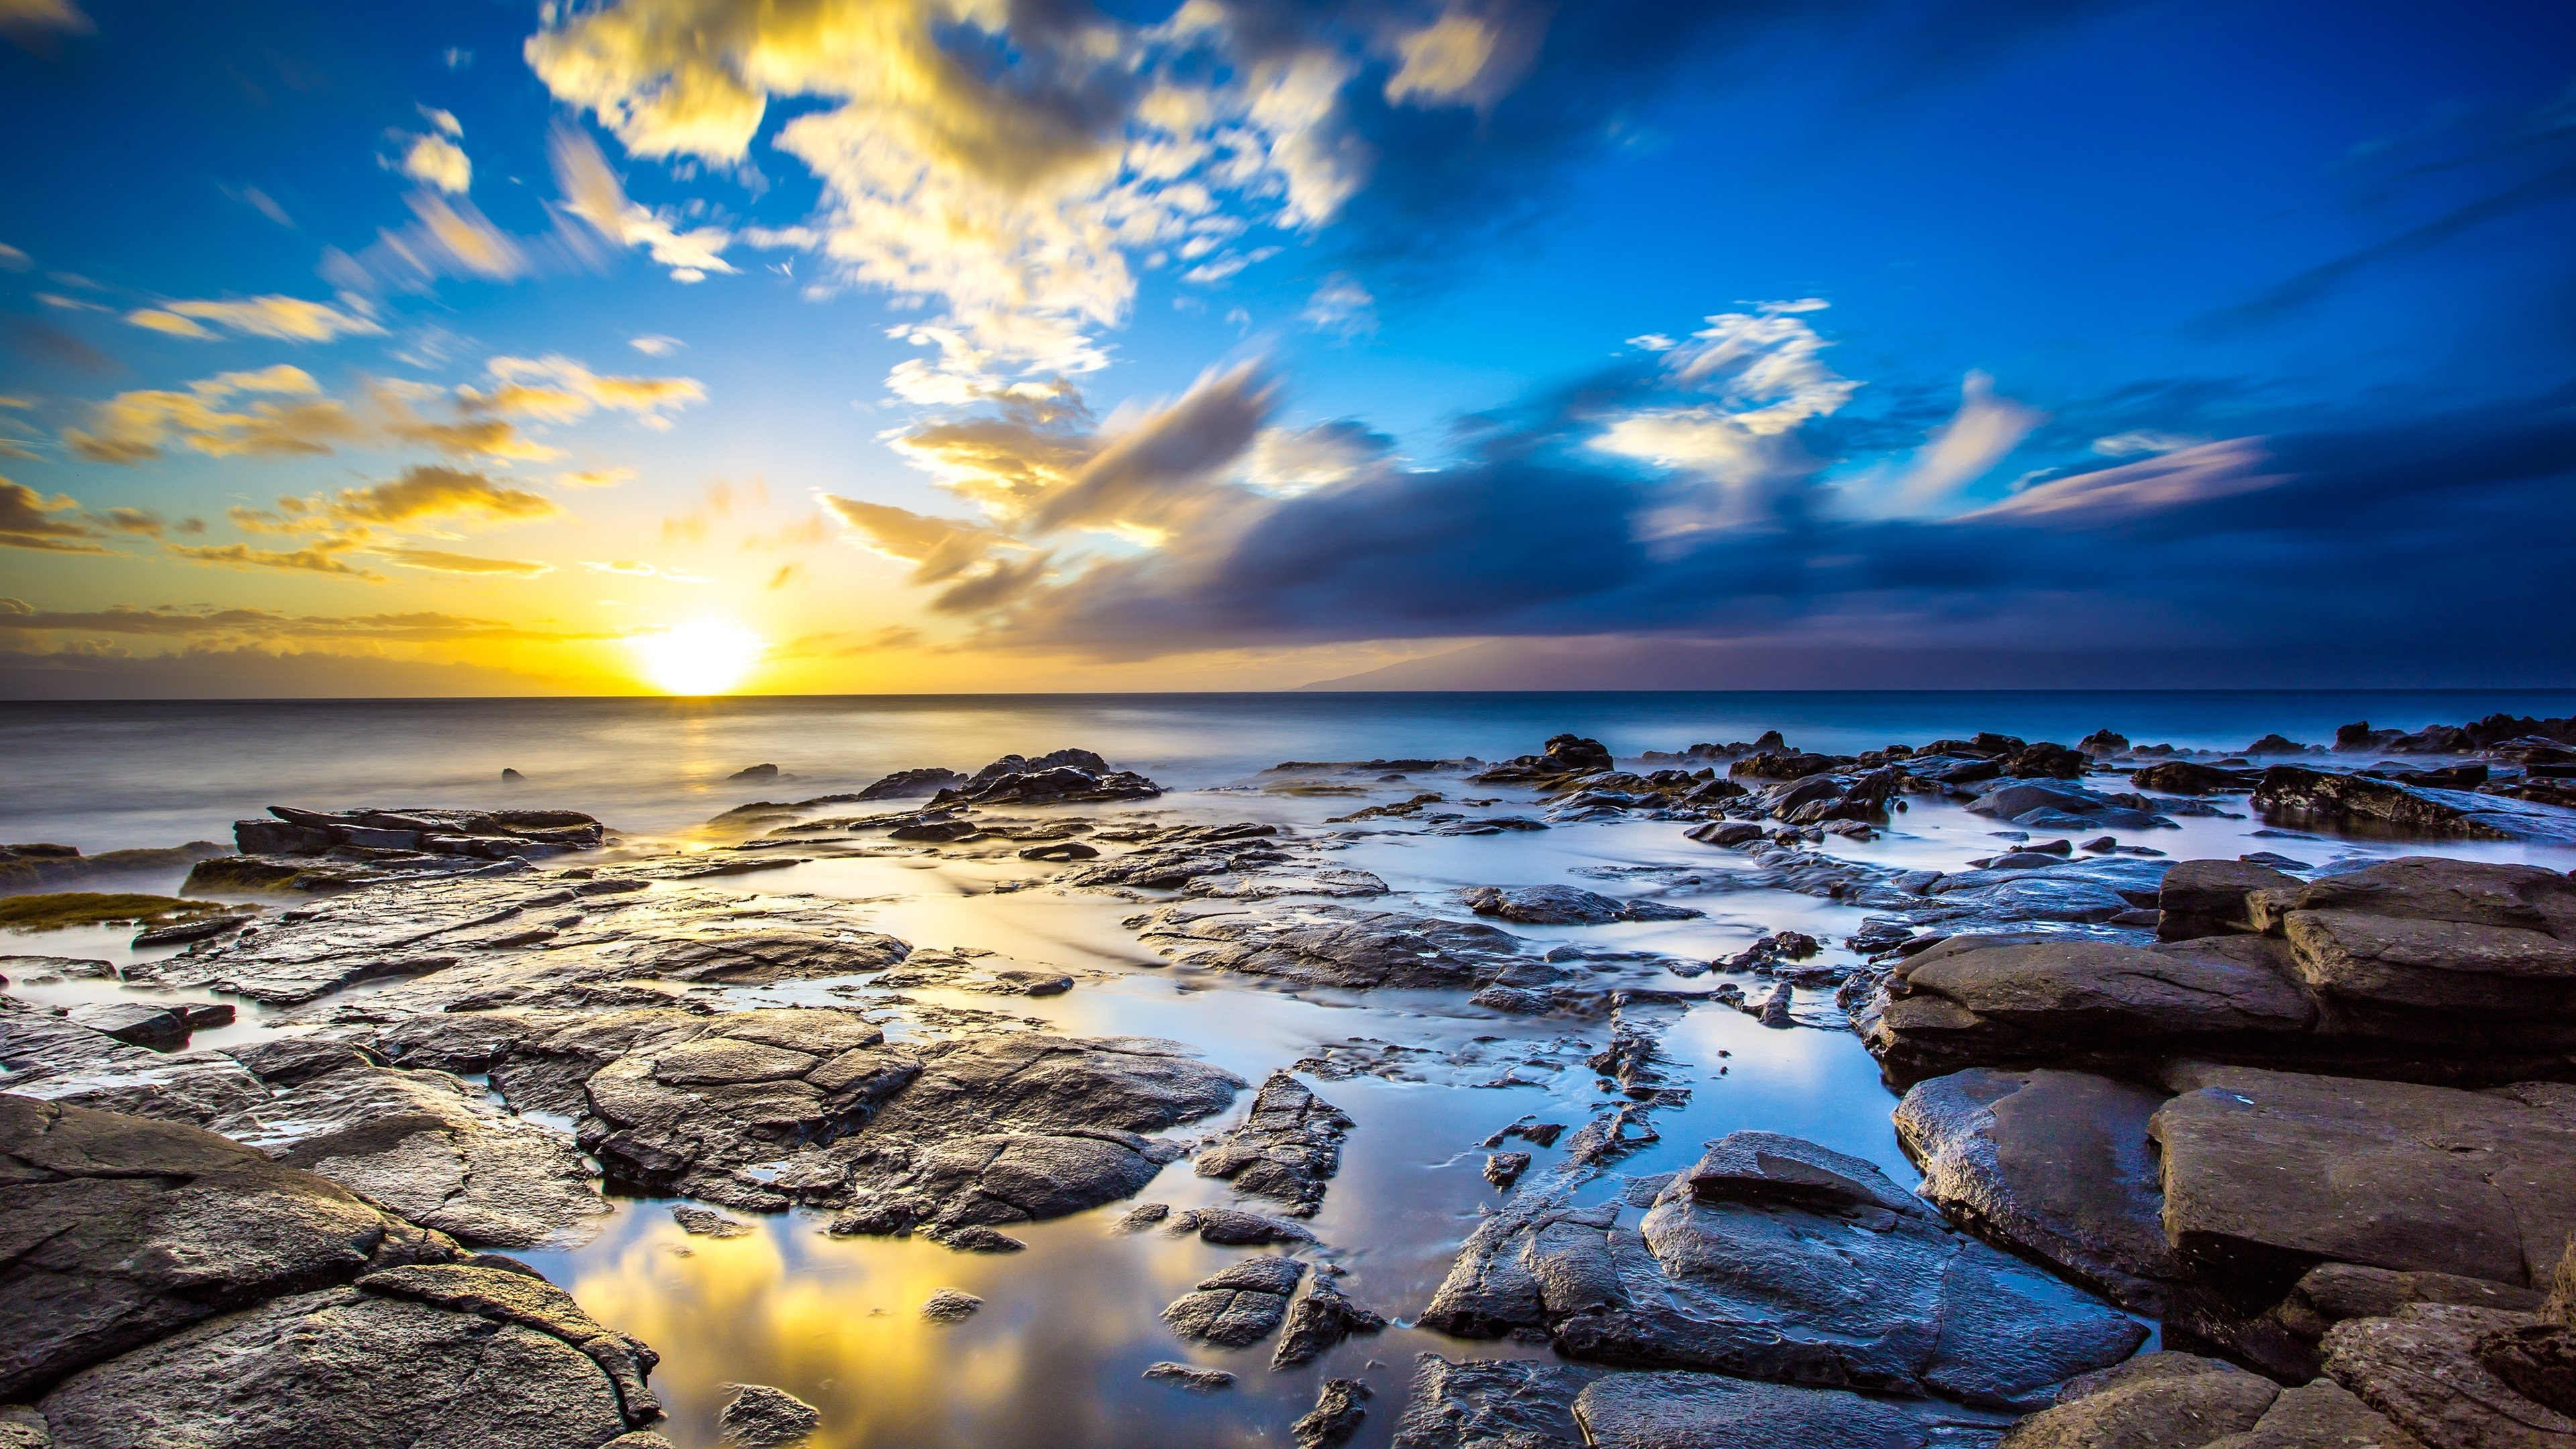 4K Ocean Wallpapers High Quality | Download Free